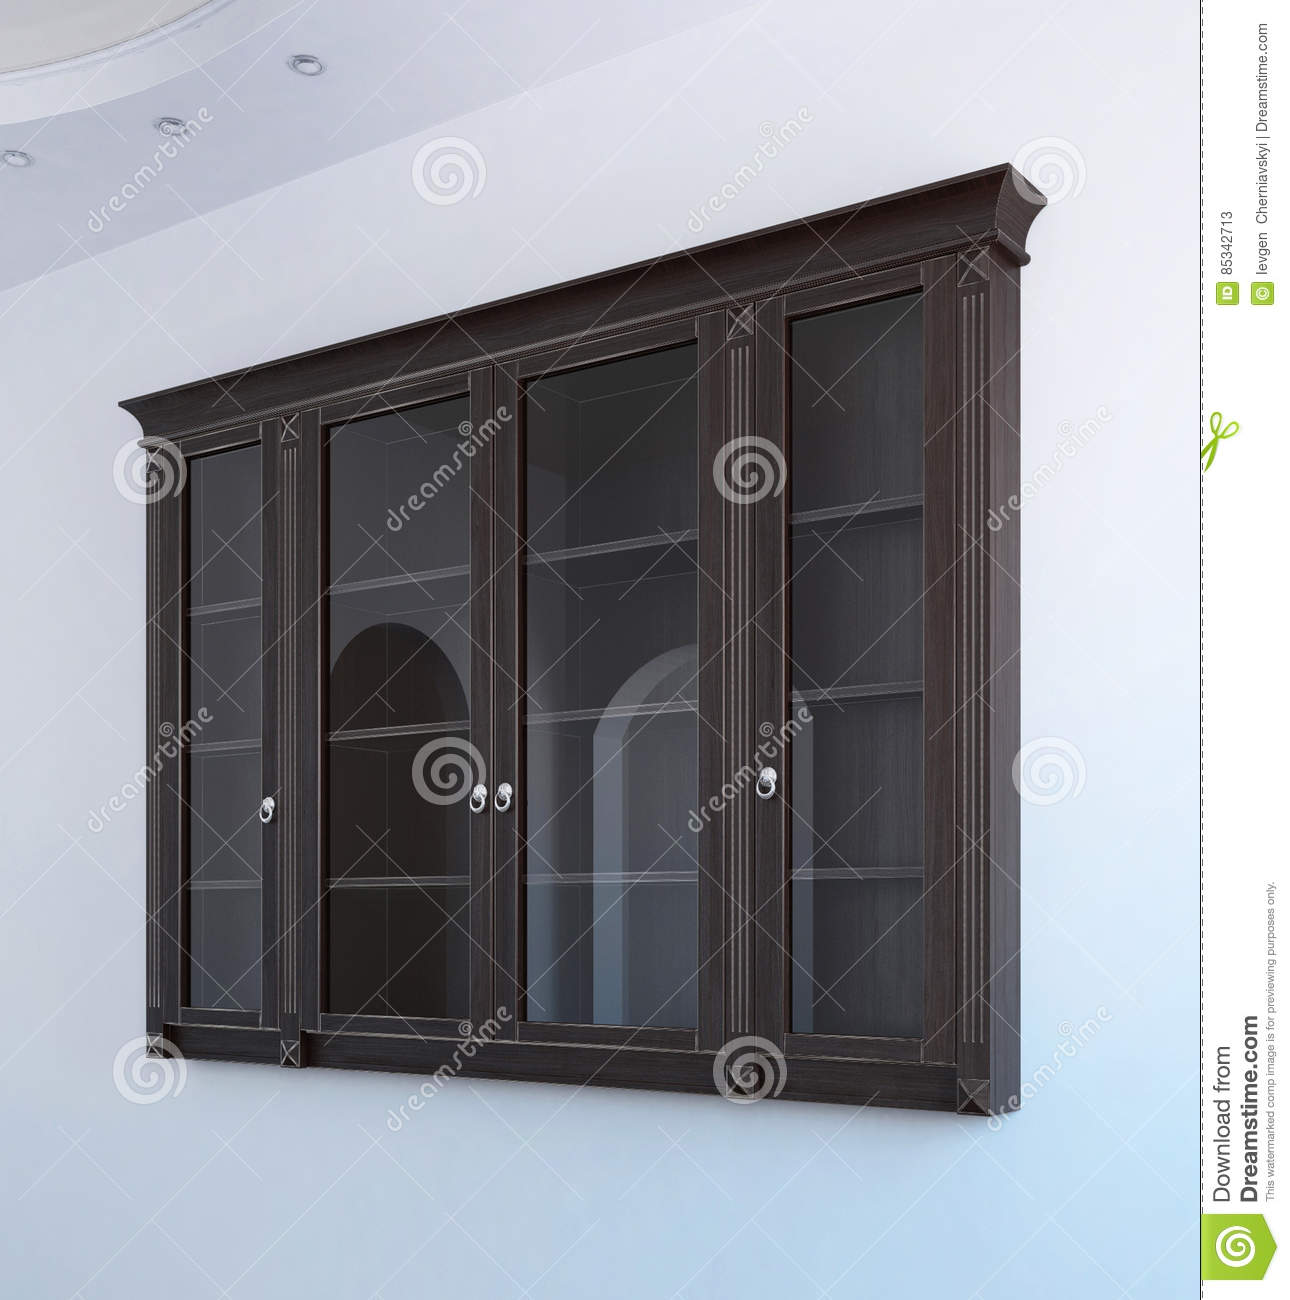 Hanging Wall Cabinet classic style hanging wall cabinet, 3d illustration stock